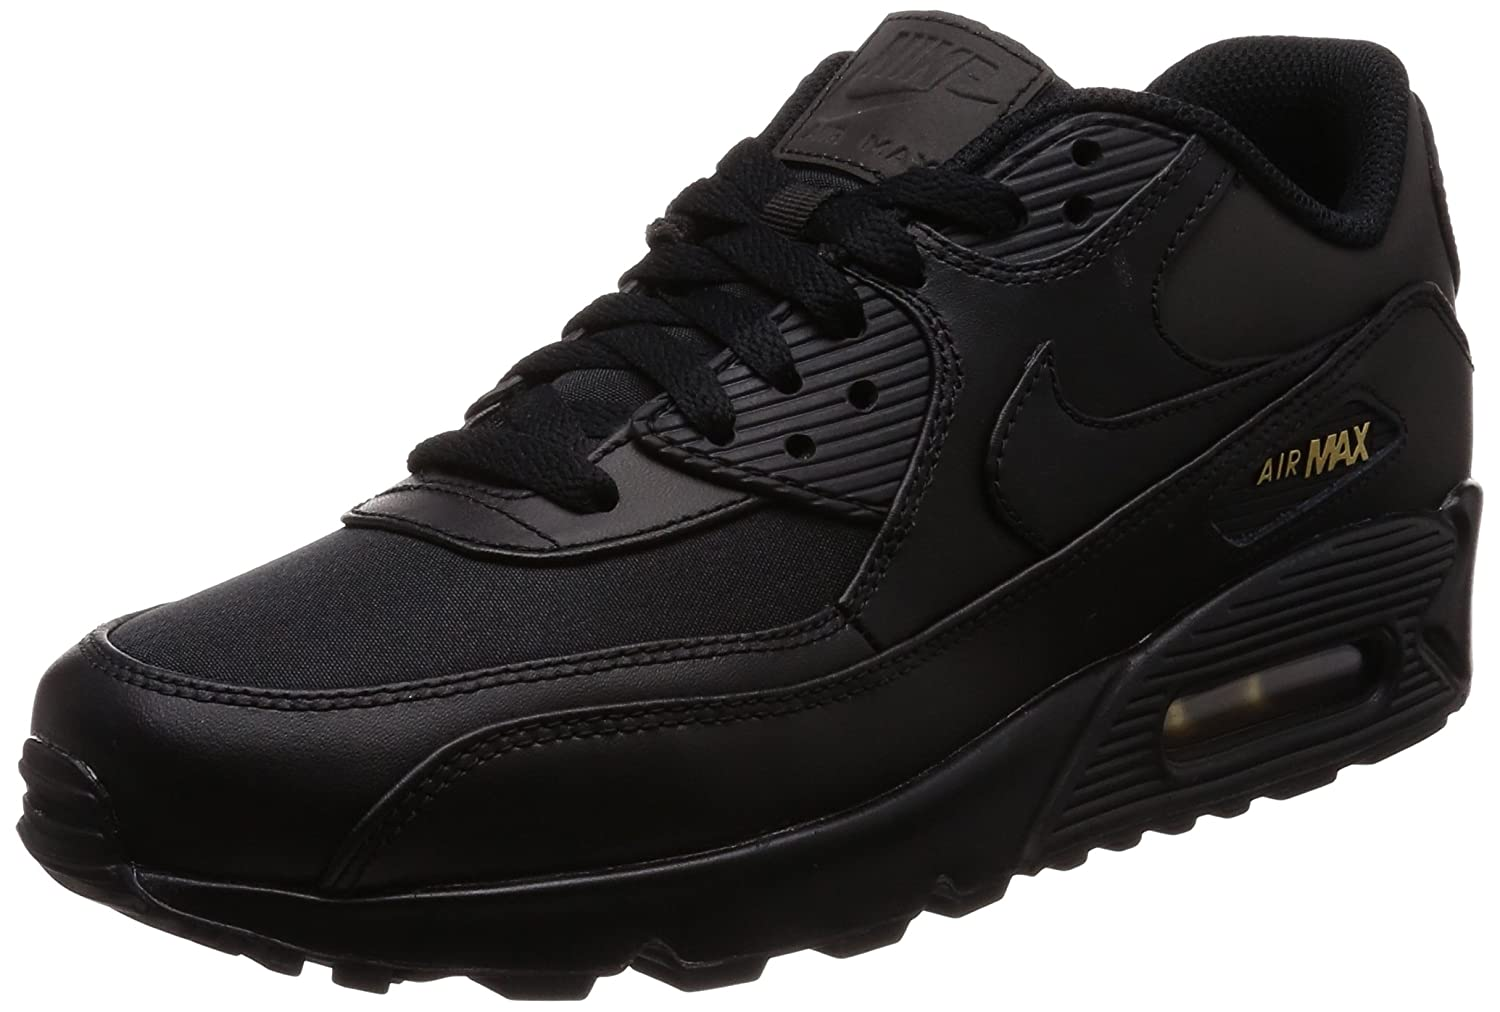 wholesale dealer 5cb95 3b3d6 Nike Mens Air Max 90 Premium, BlackMetallic Gold, 13 M US Amazon.com.au  Fashion